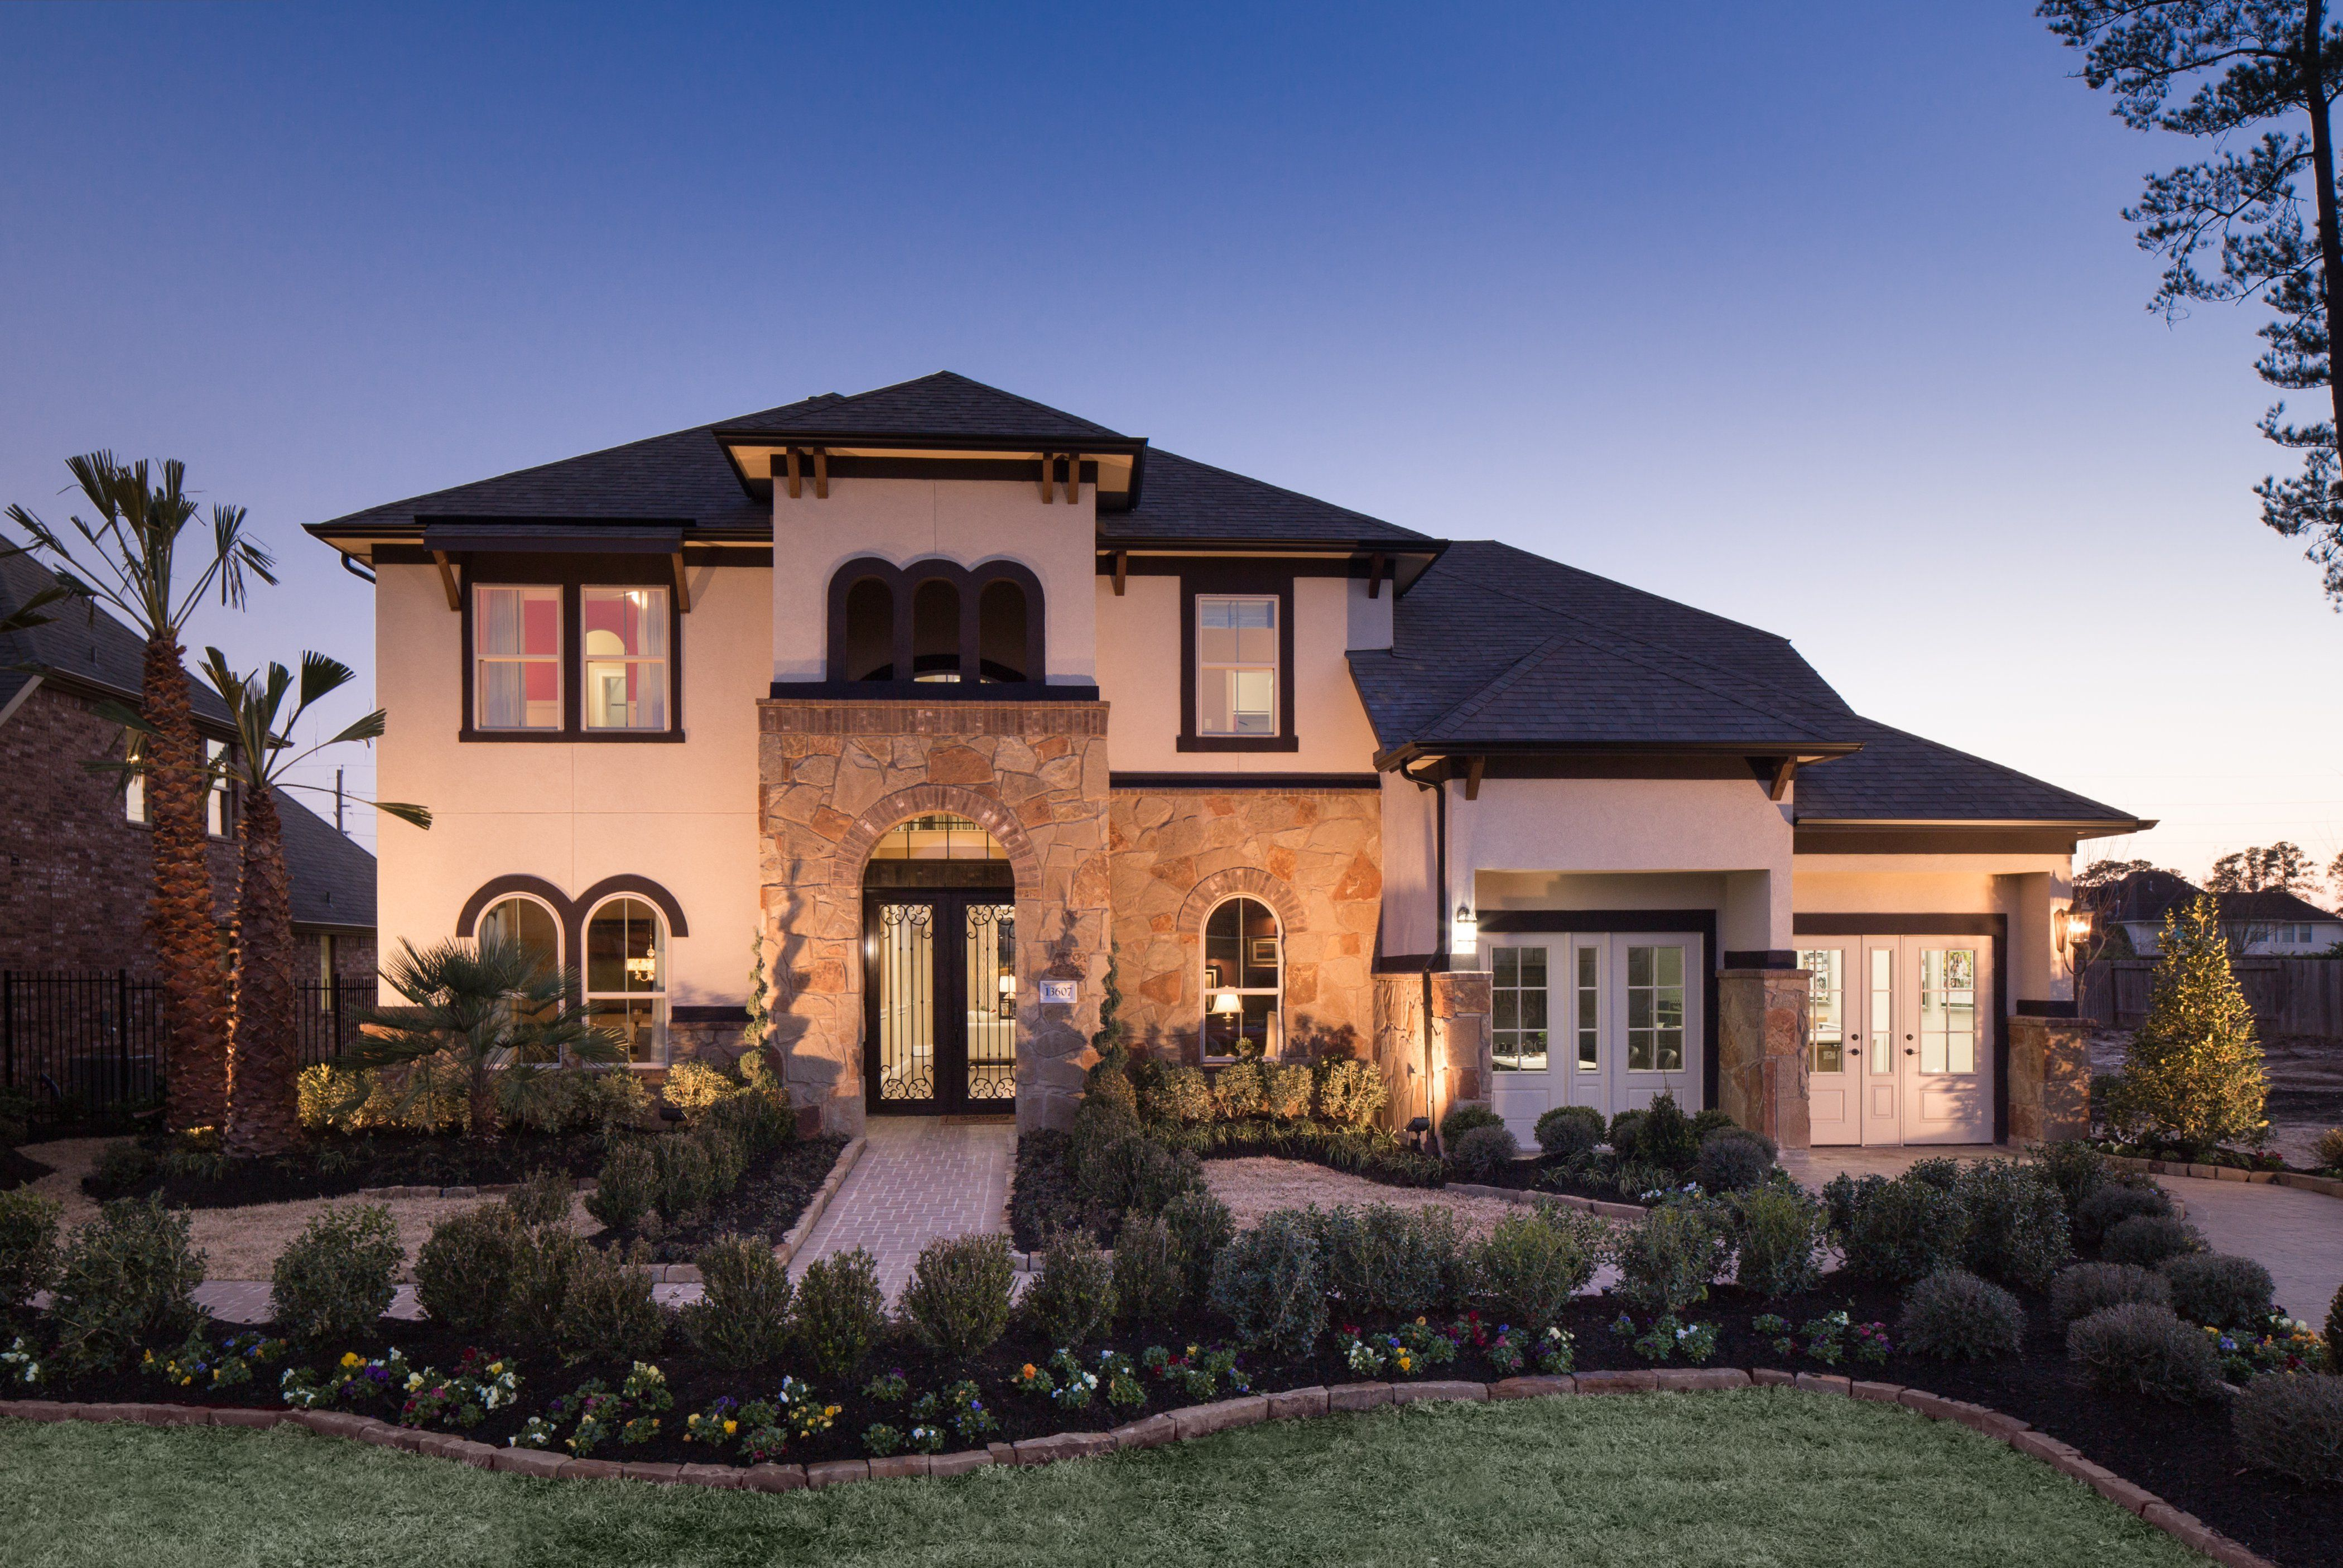 Single Family for Sale at Southern Trails - Tuscano 11912 Maybrook Court Pearland, Texas 77584 United States